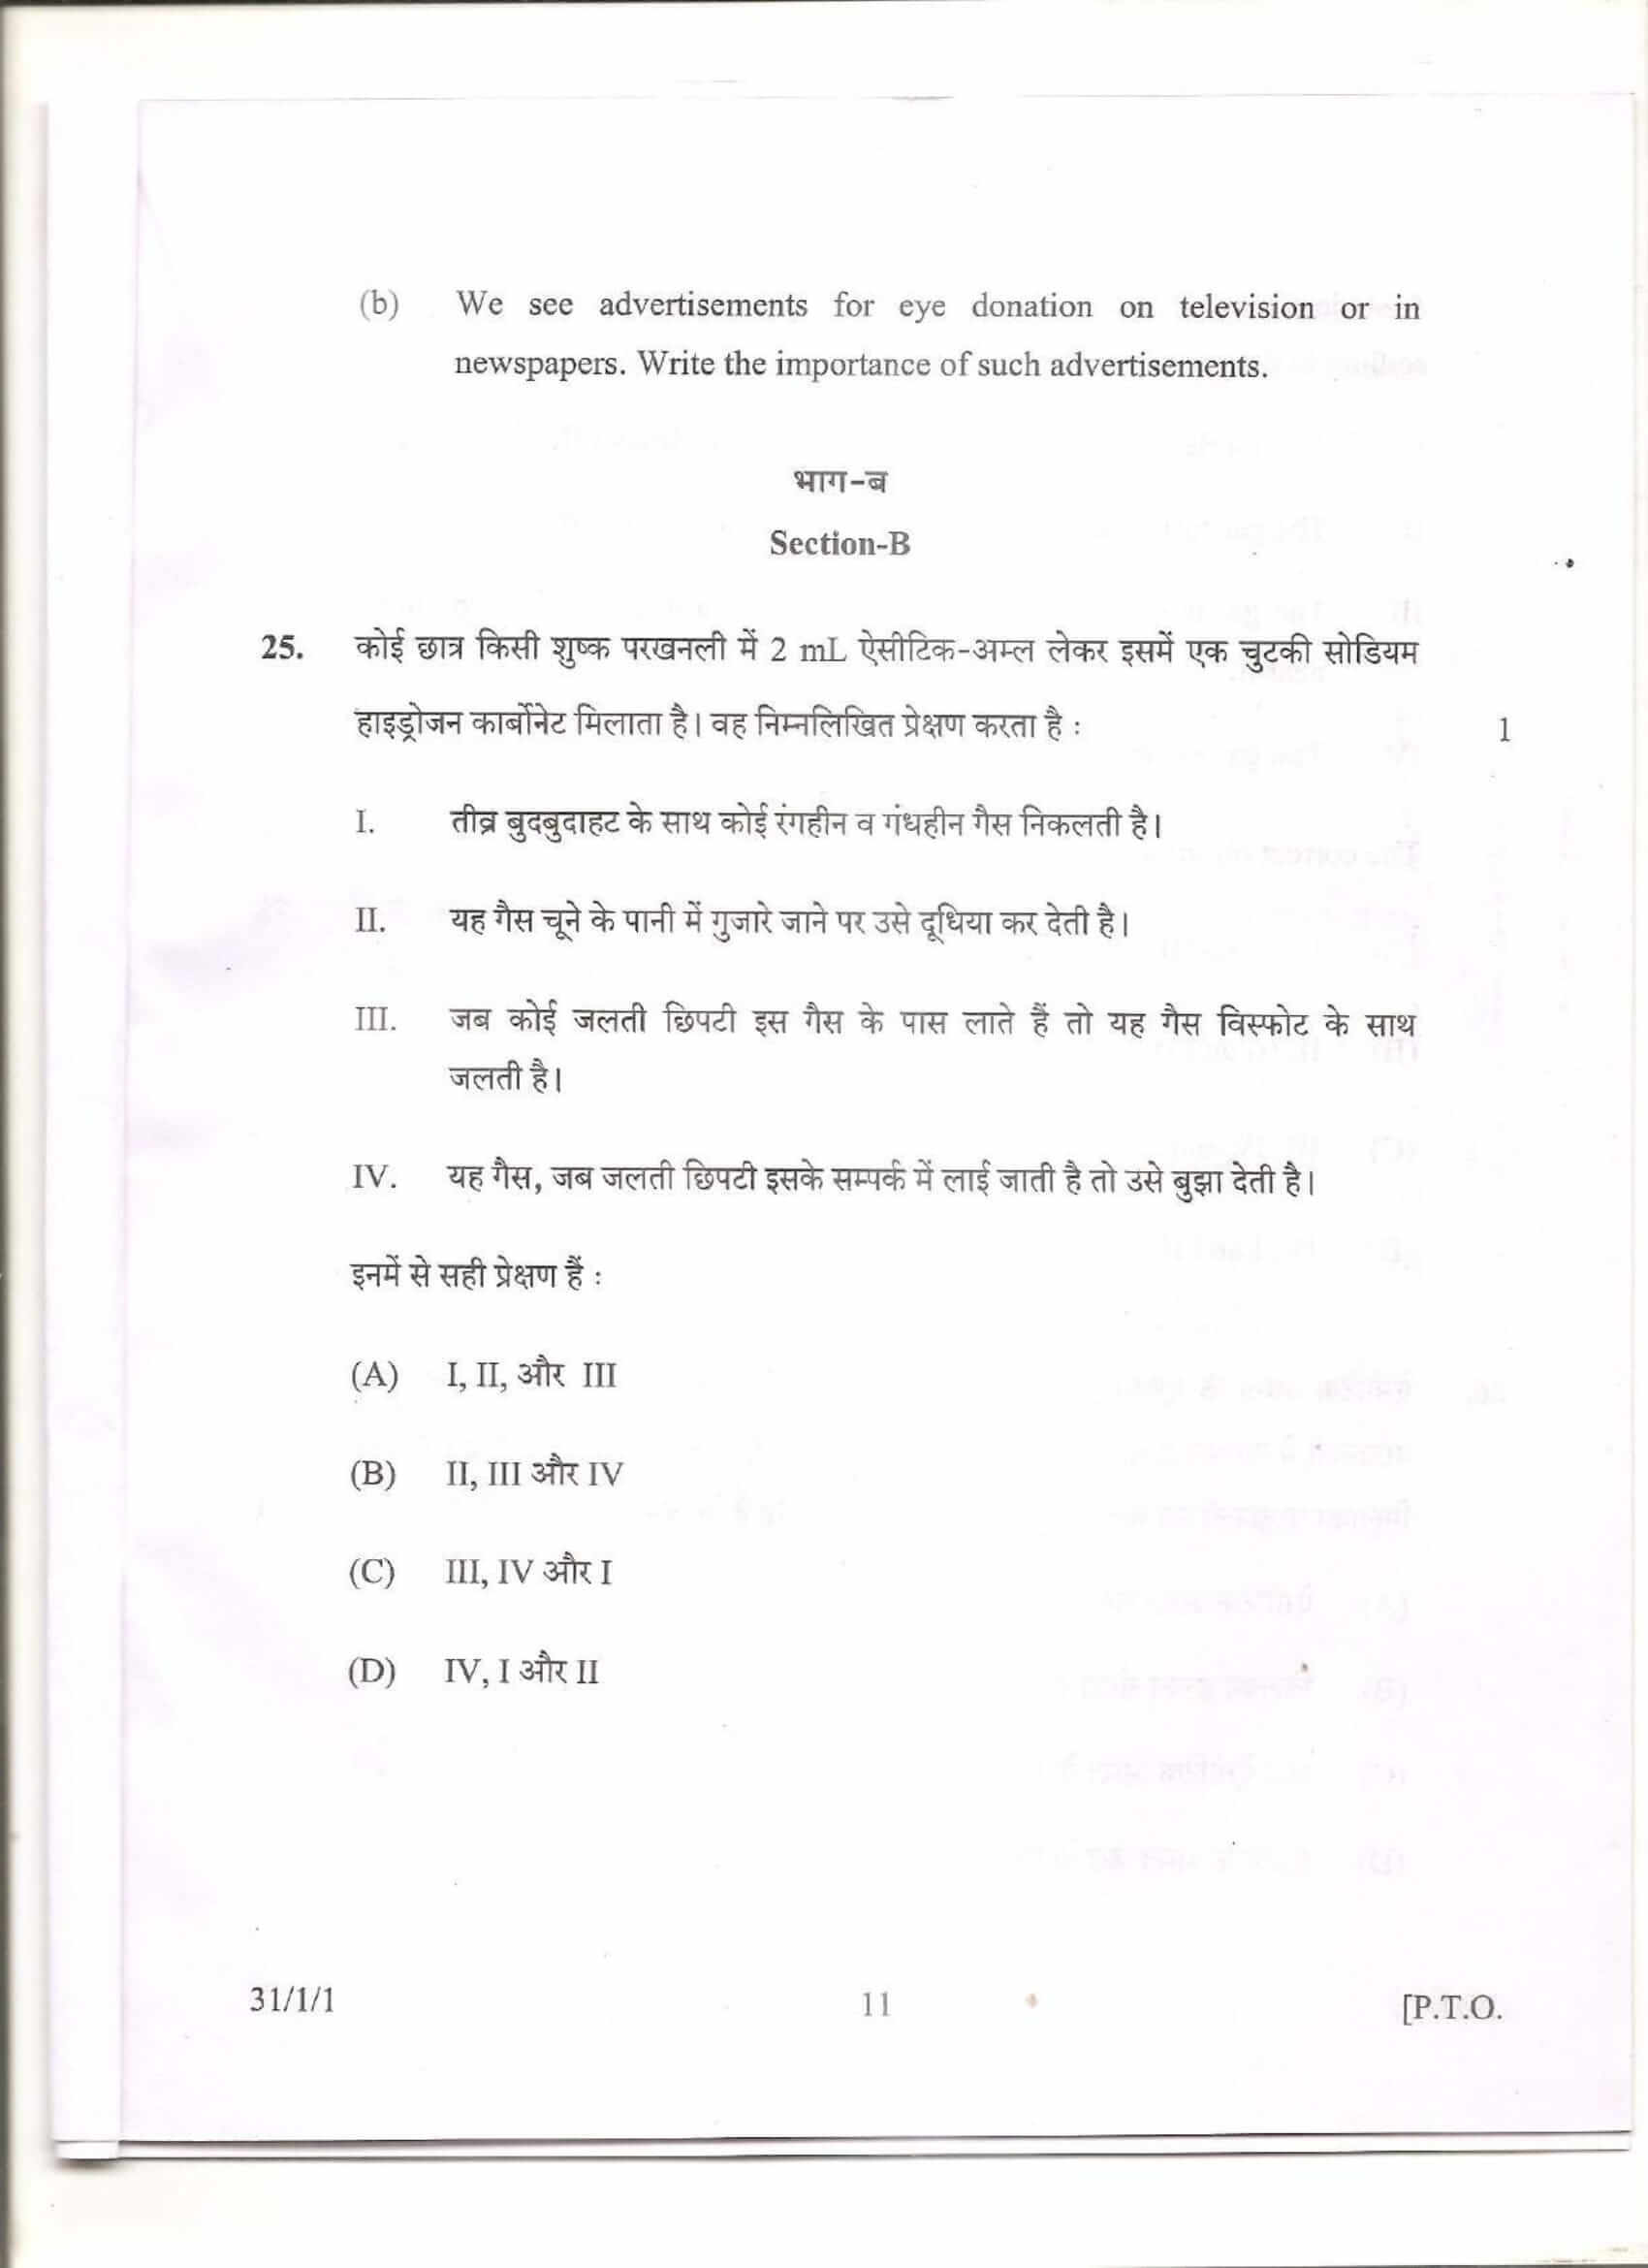 cbse class 10 science question paper 2013